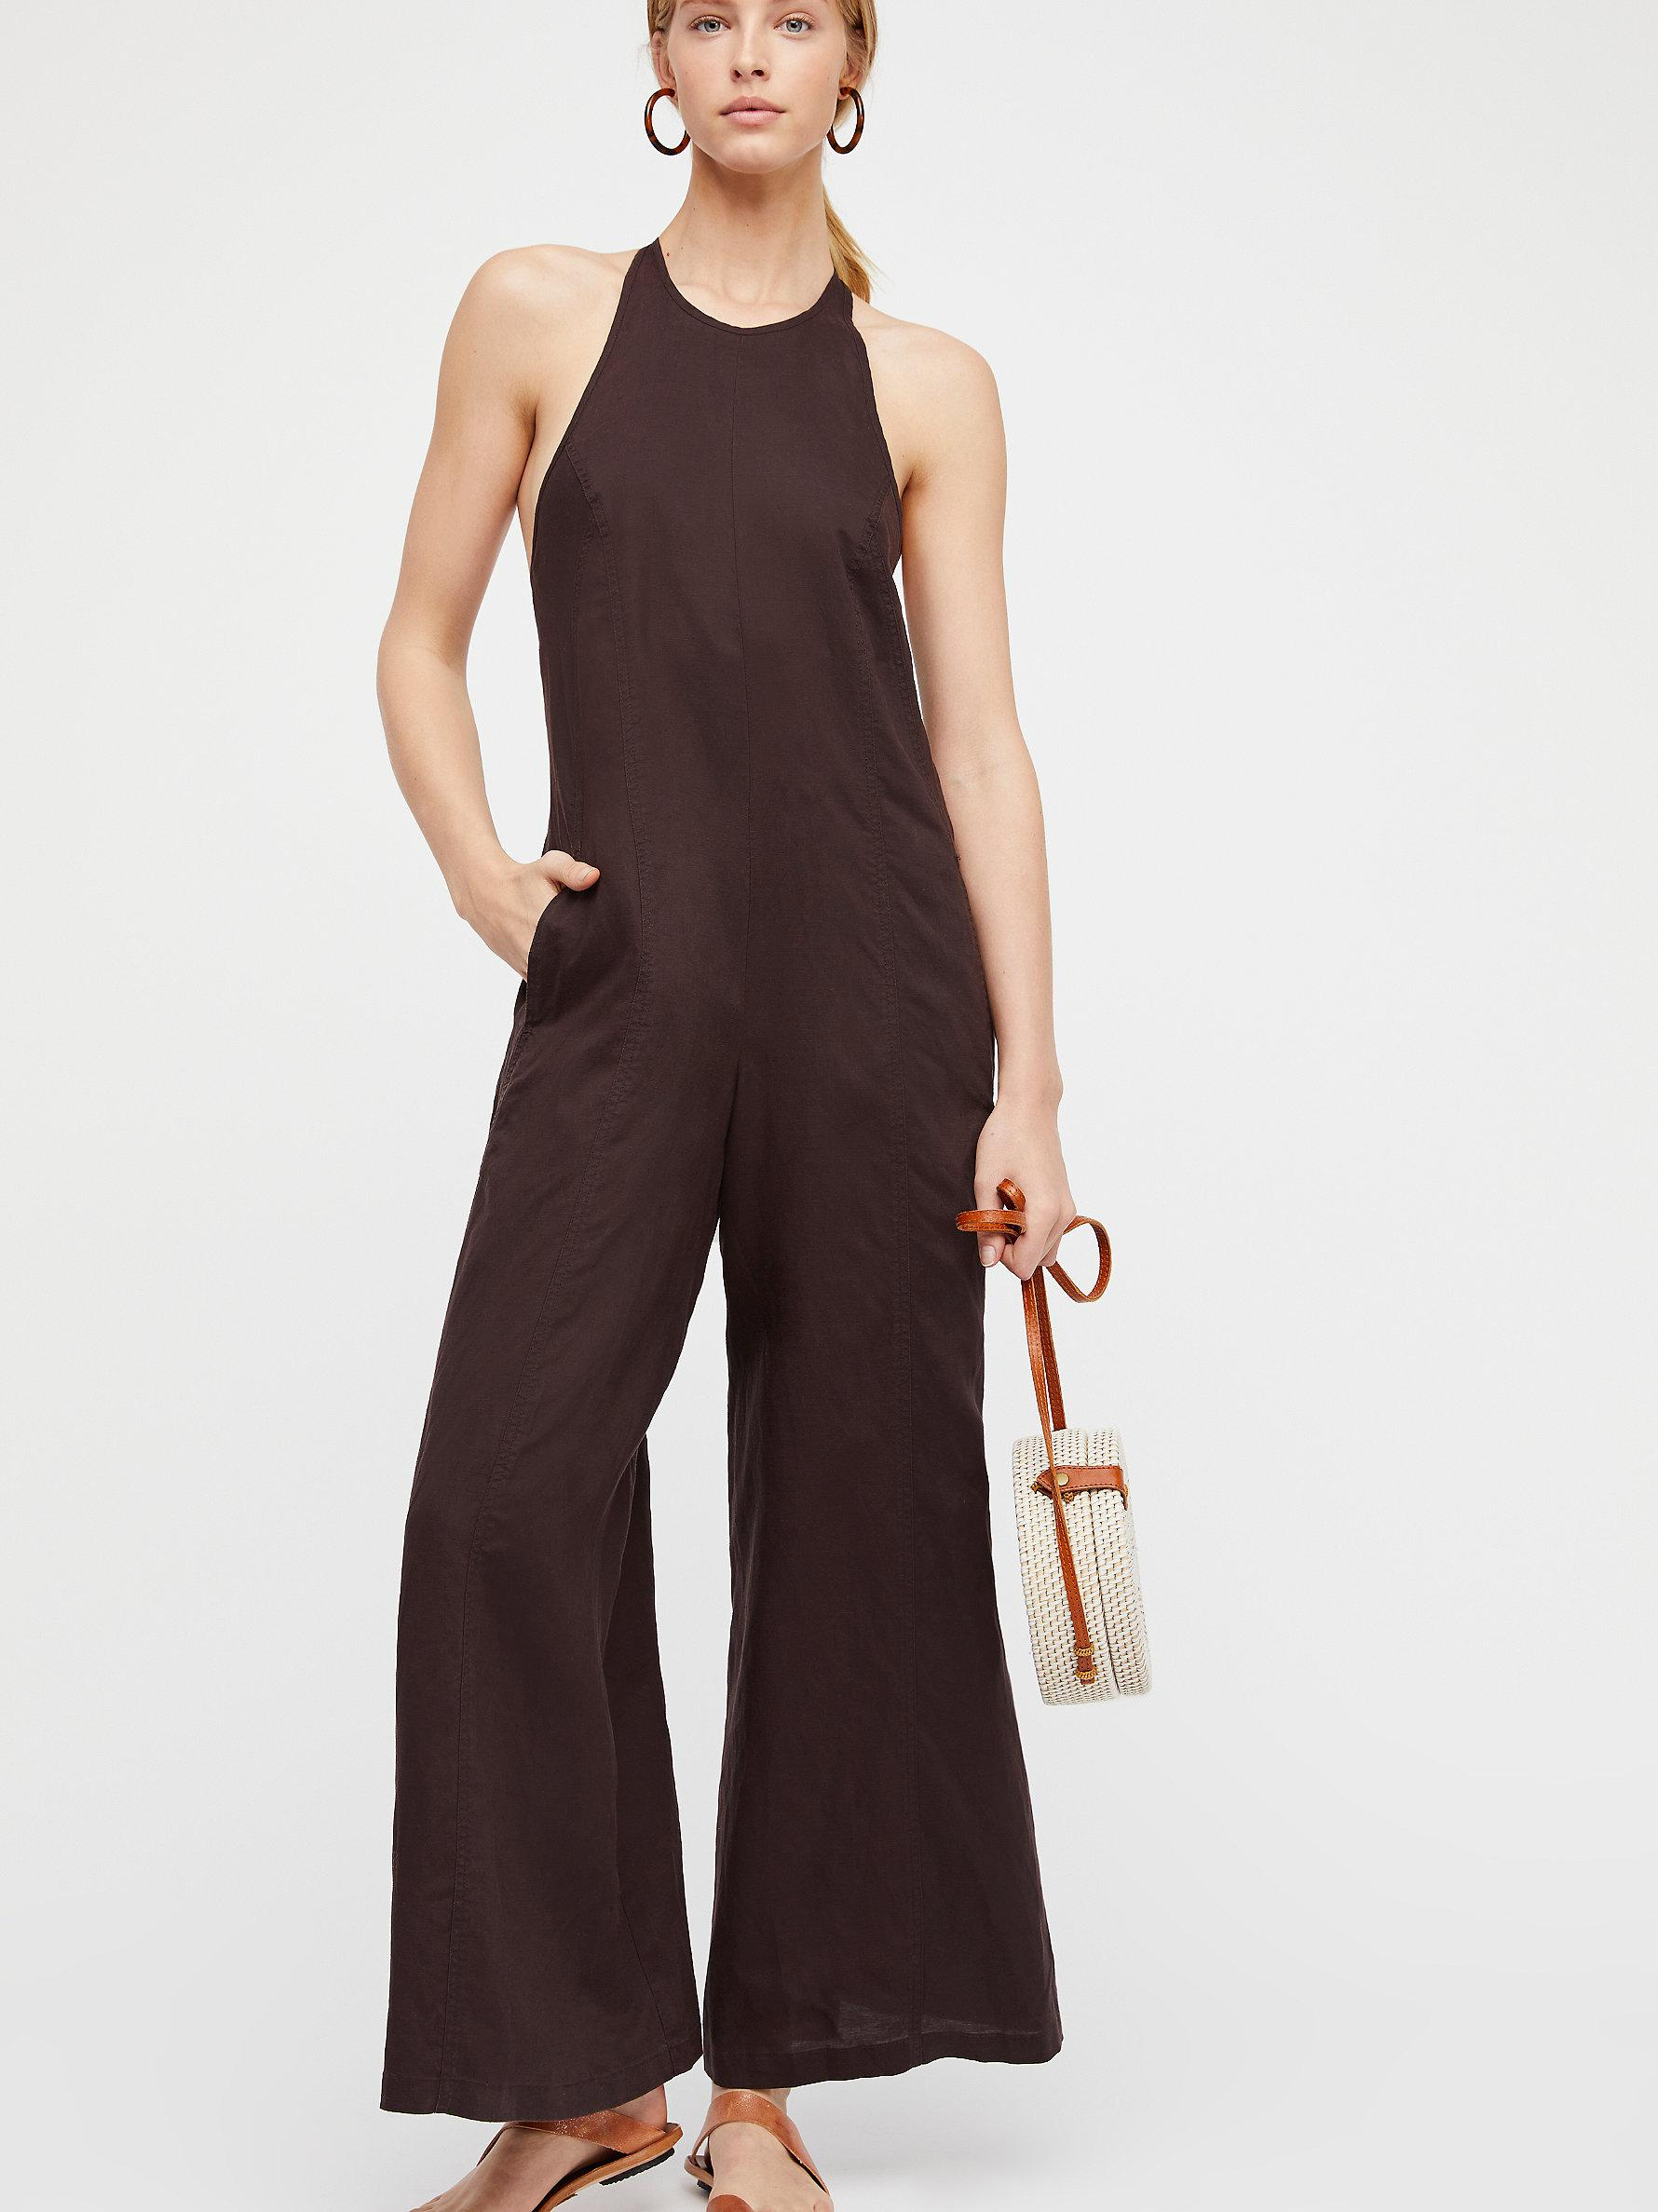 25e9e5870d92 Free People Black Swan Jumpsuit in Black - Lyst